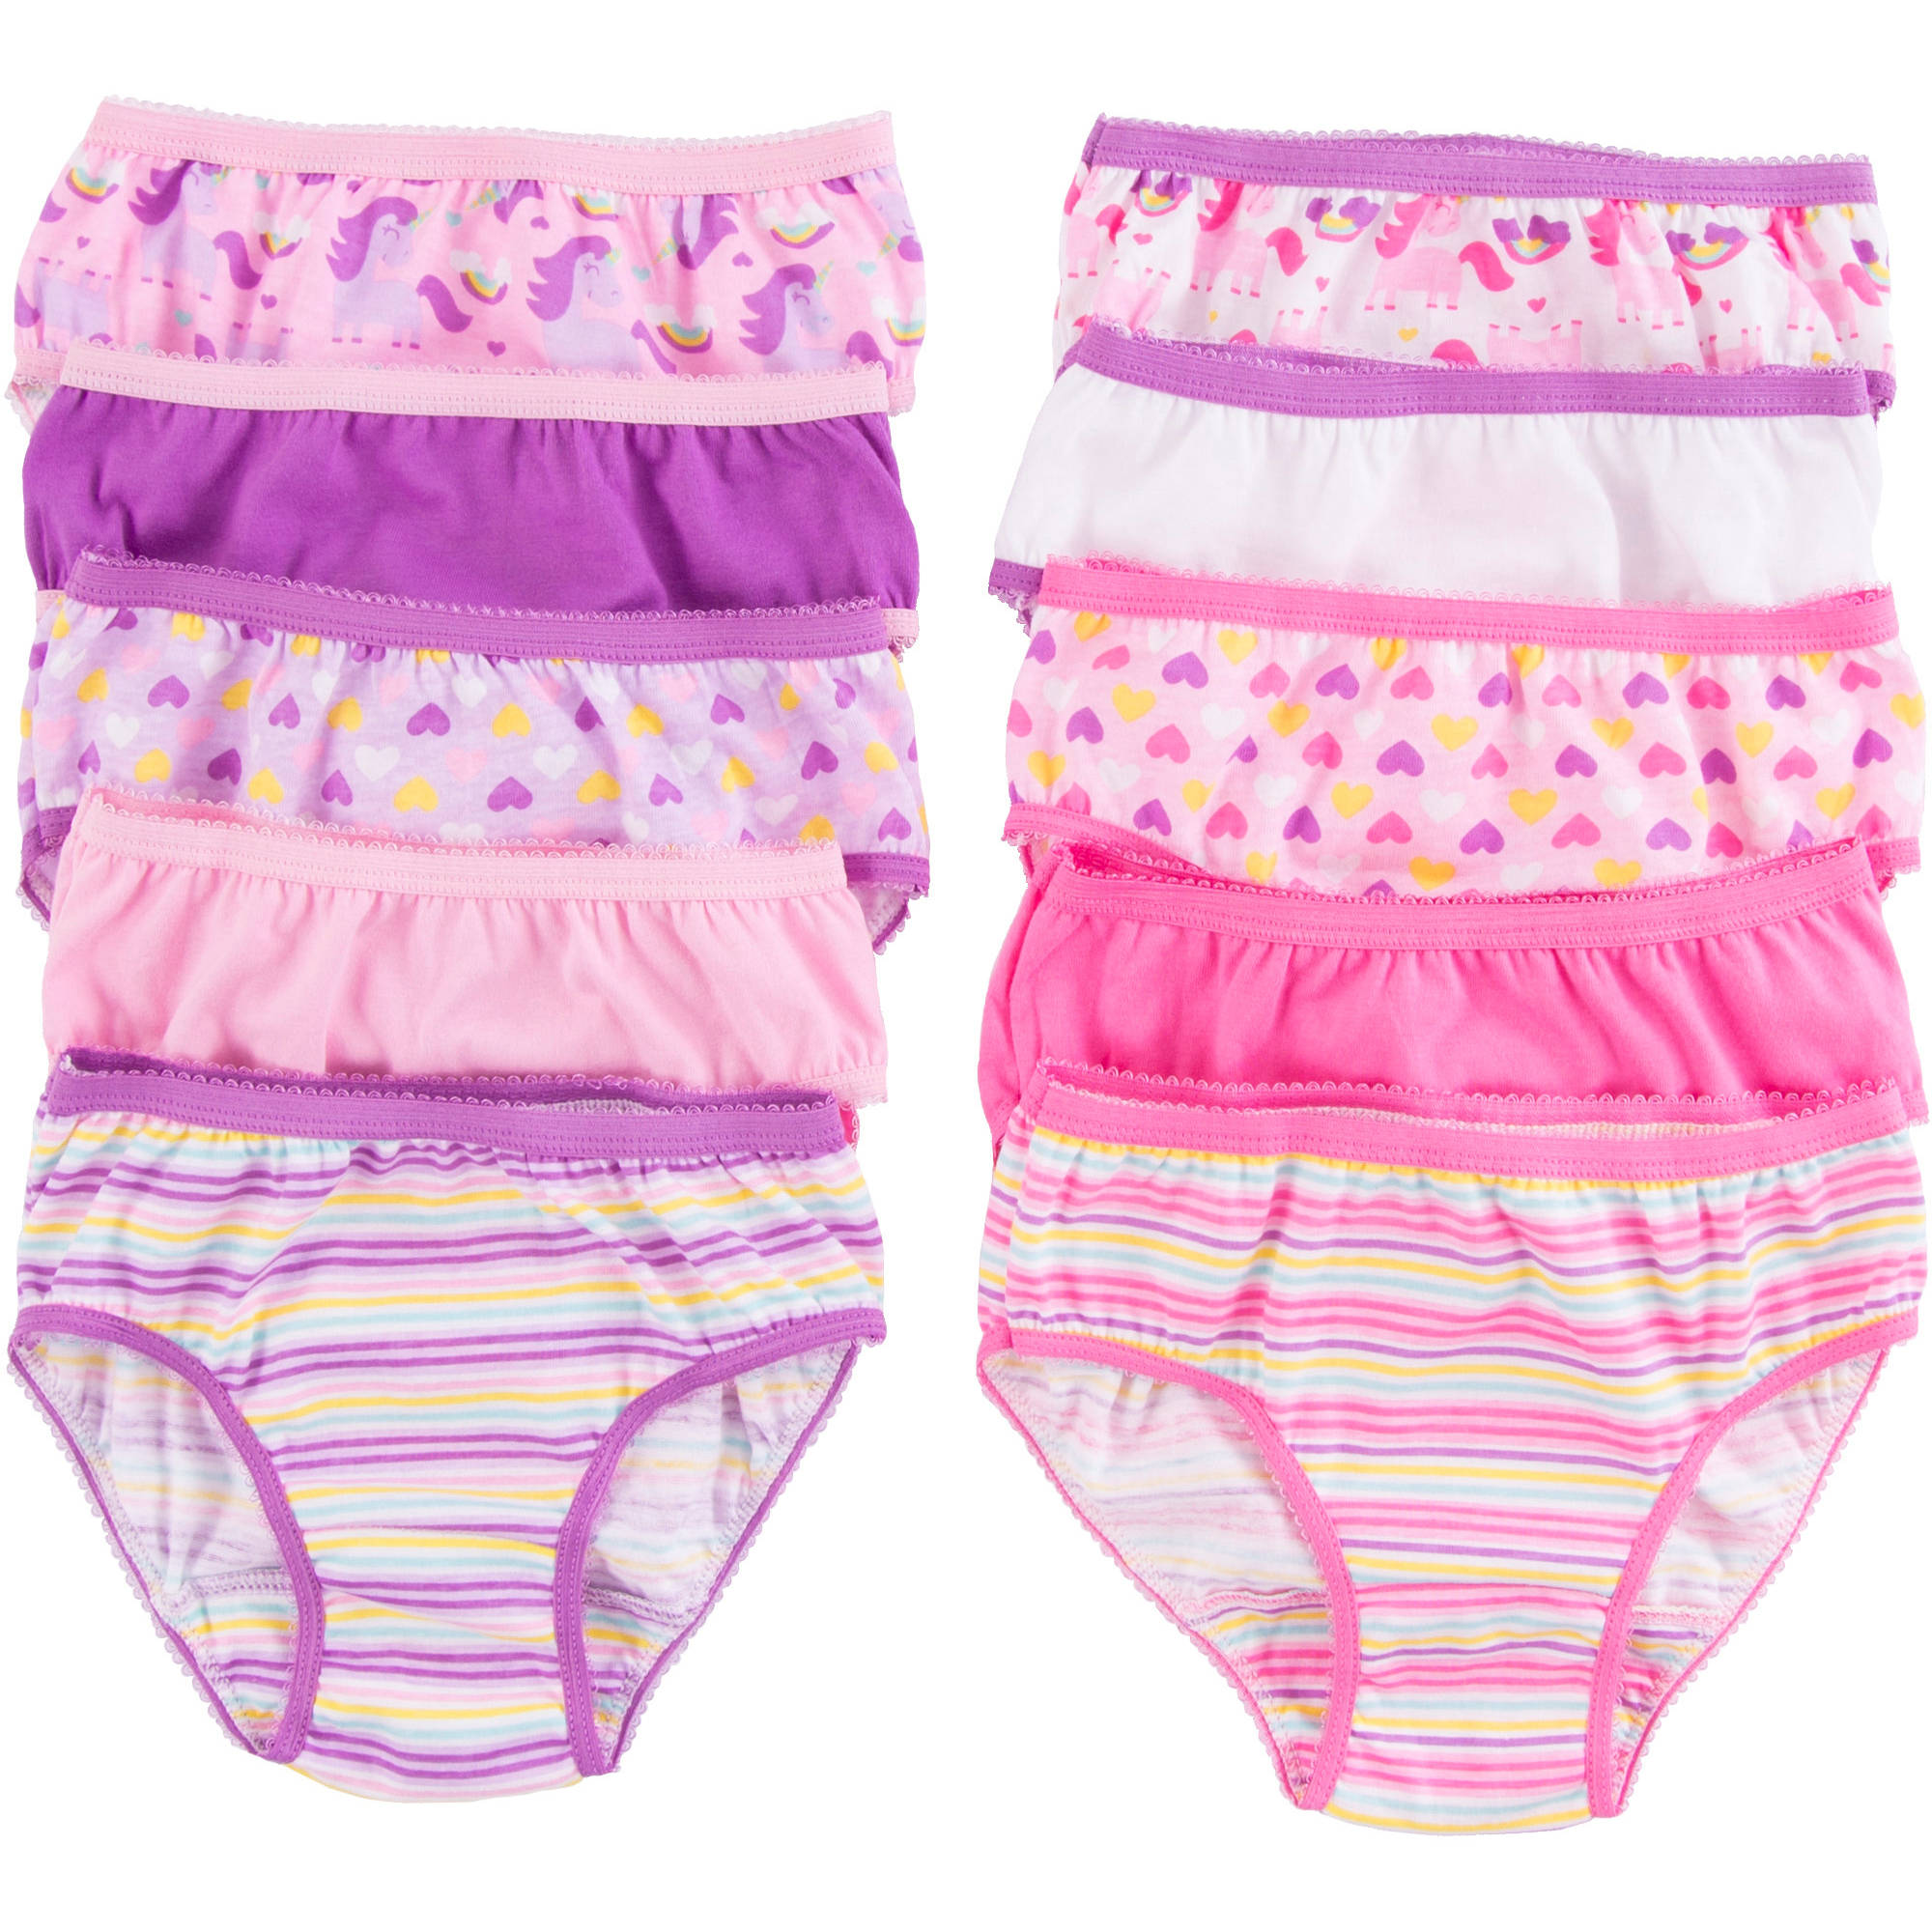 Garanimals Toddler Girls Panty 10 Pack